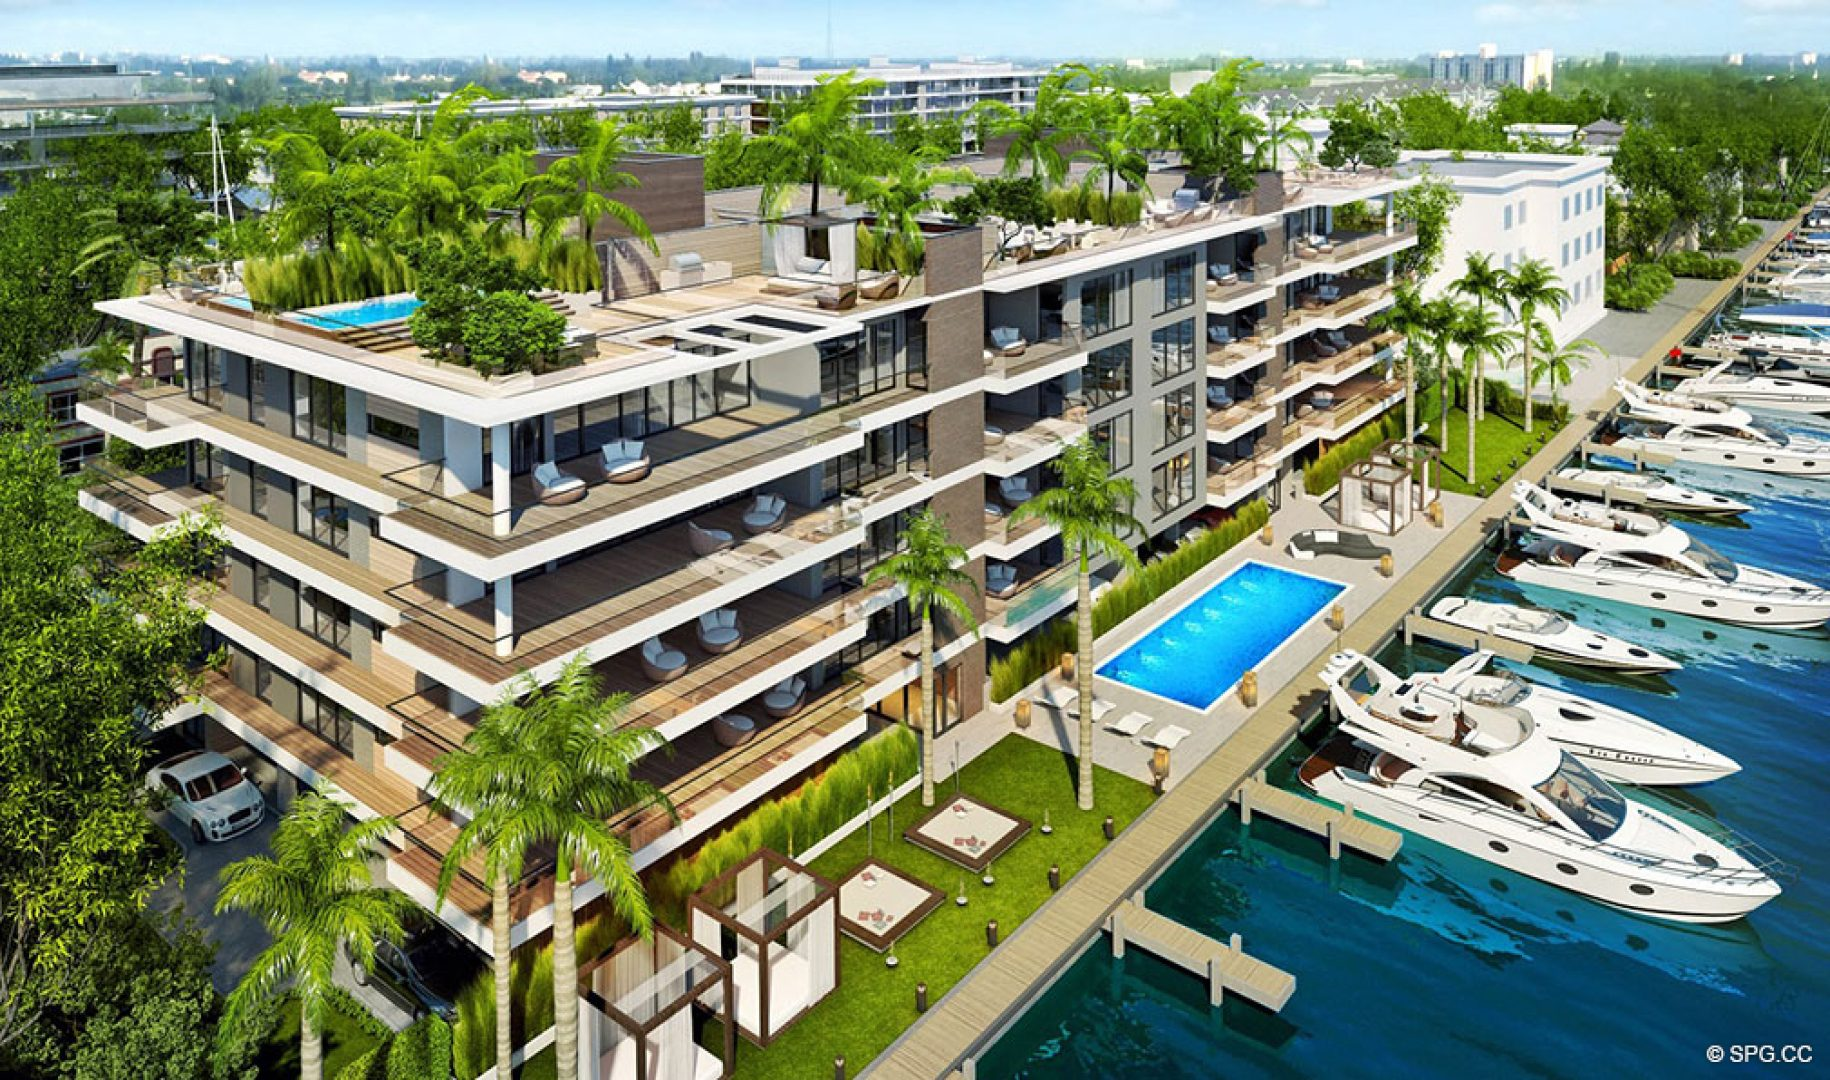 AquaLuna Las Olas, Luxury Waterfront Condos in Fort Lauderdale, Florida 33301